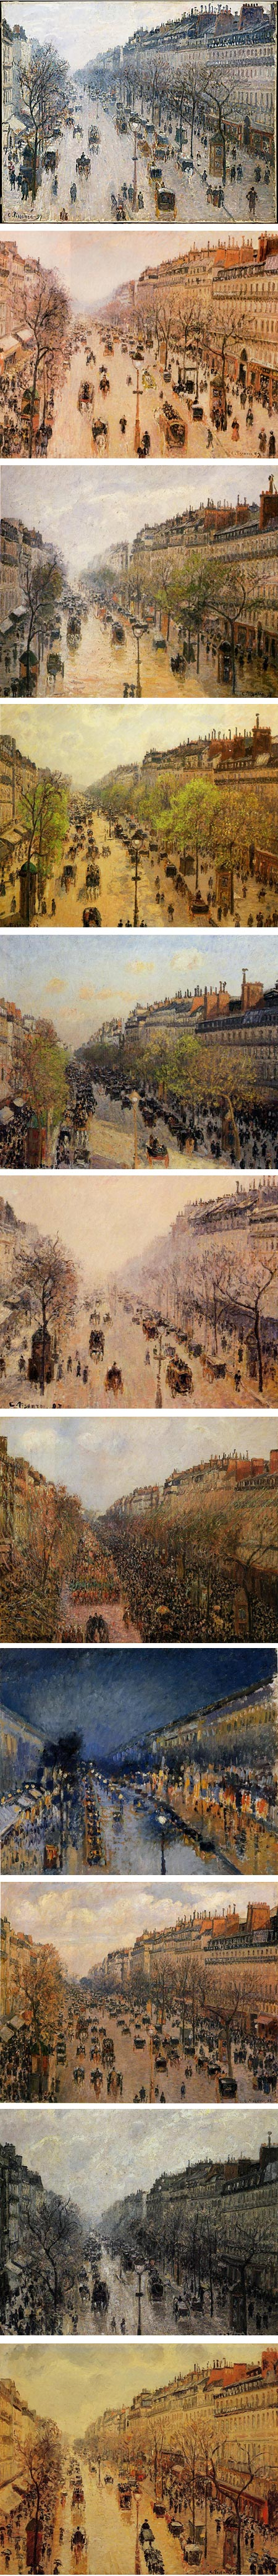 Camille Pissarro, views of the boulevard Montmartre